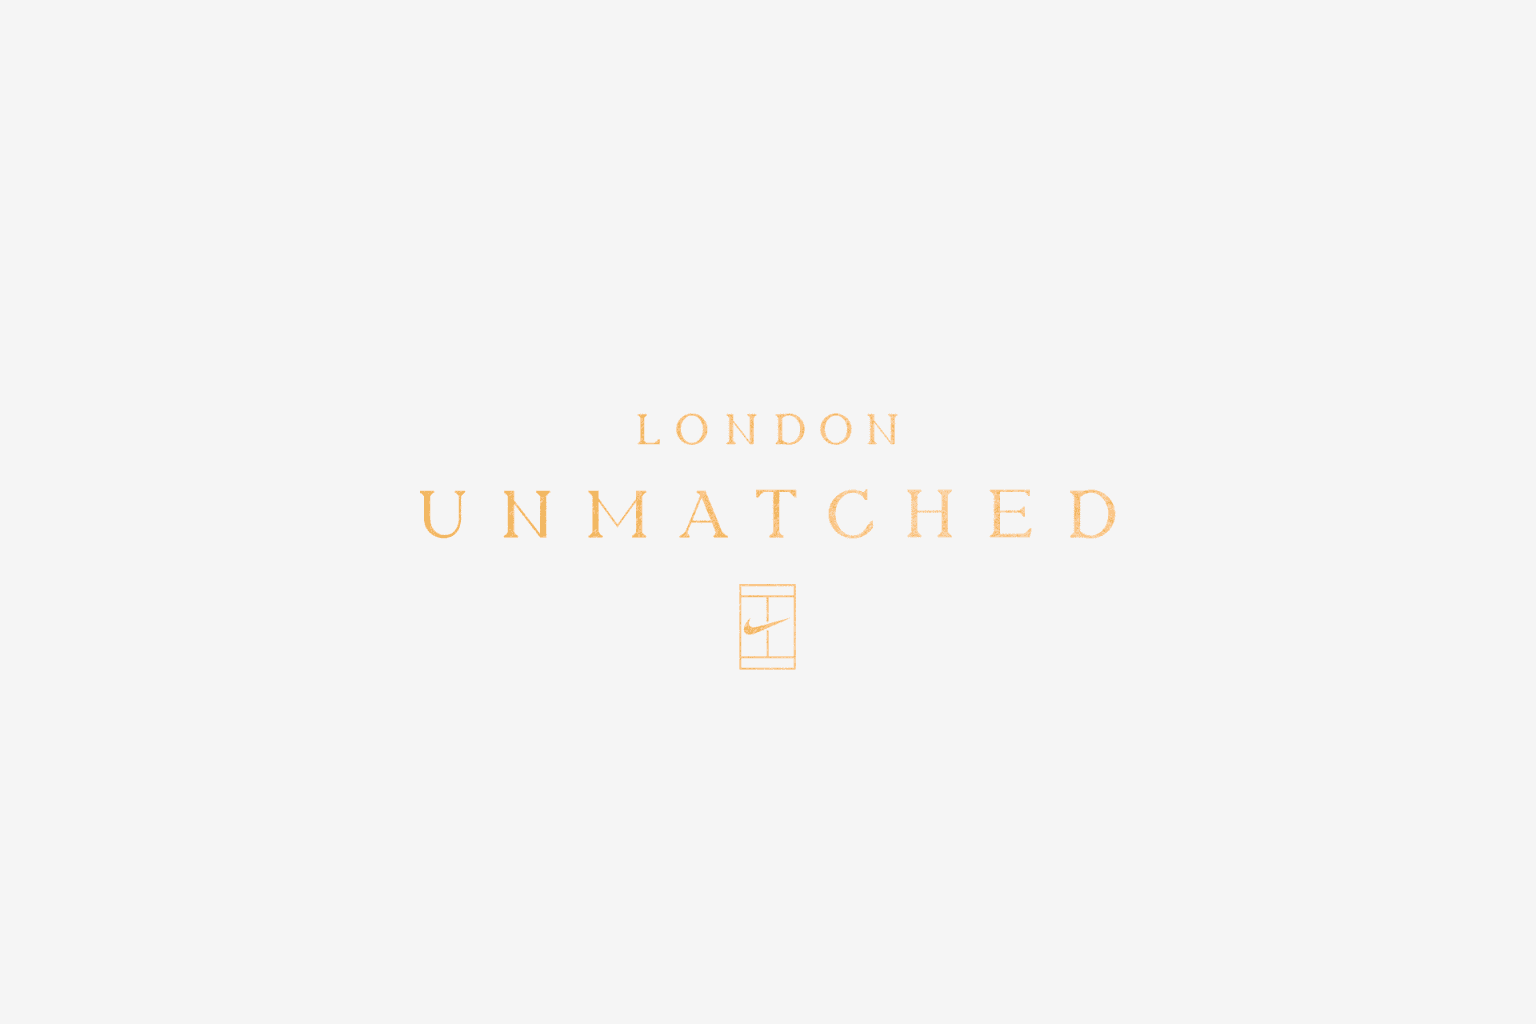 London Unmatched